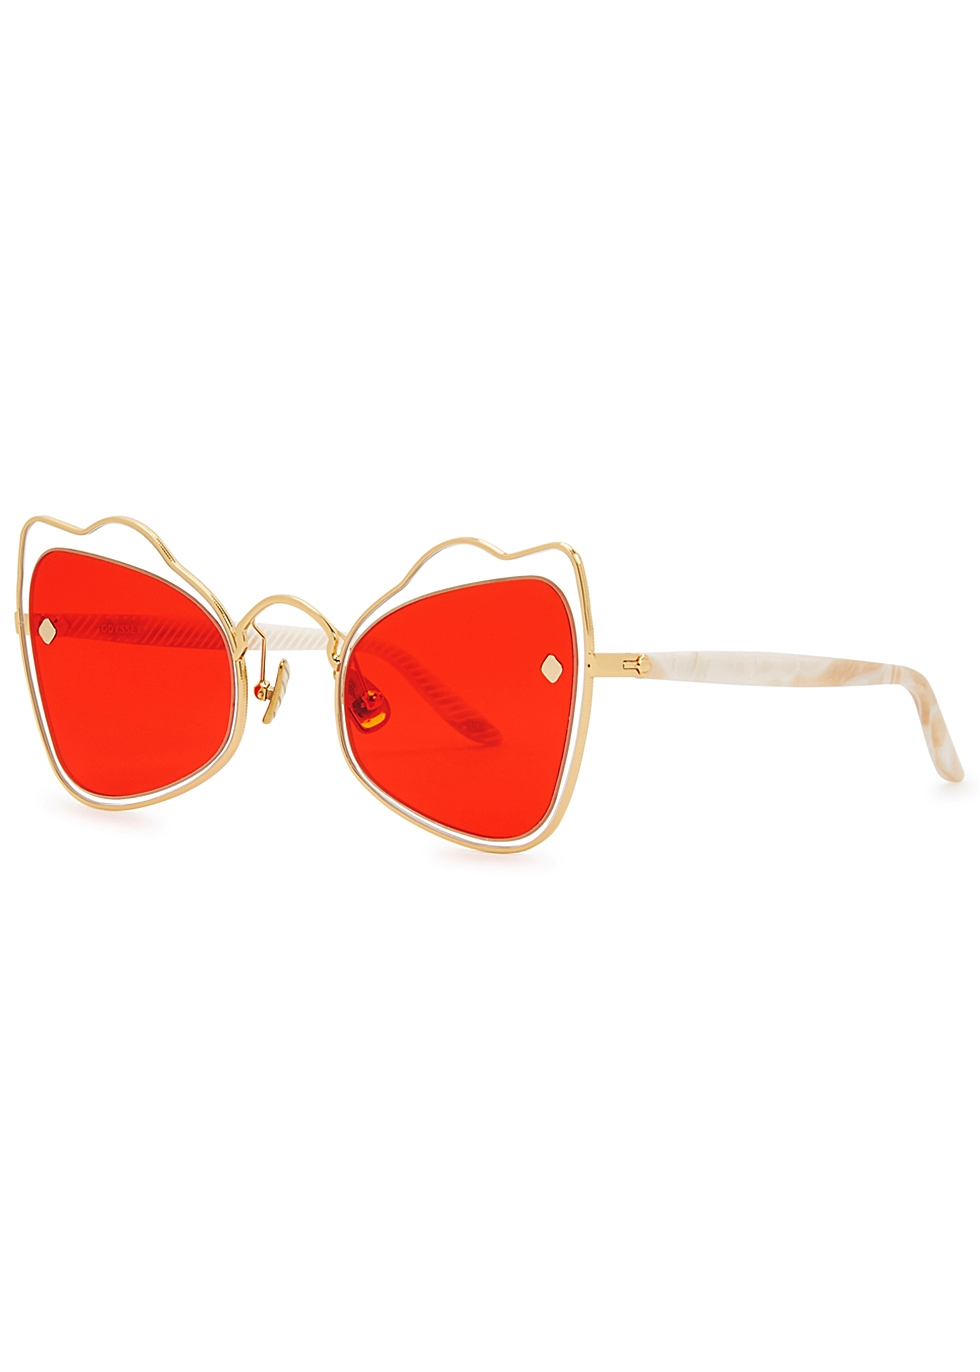 MOY ATELIER Odyssey 18Ct Gold-Plated Sunglasses in Red